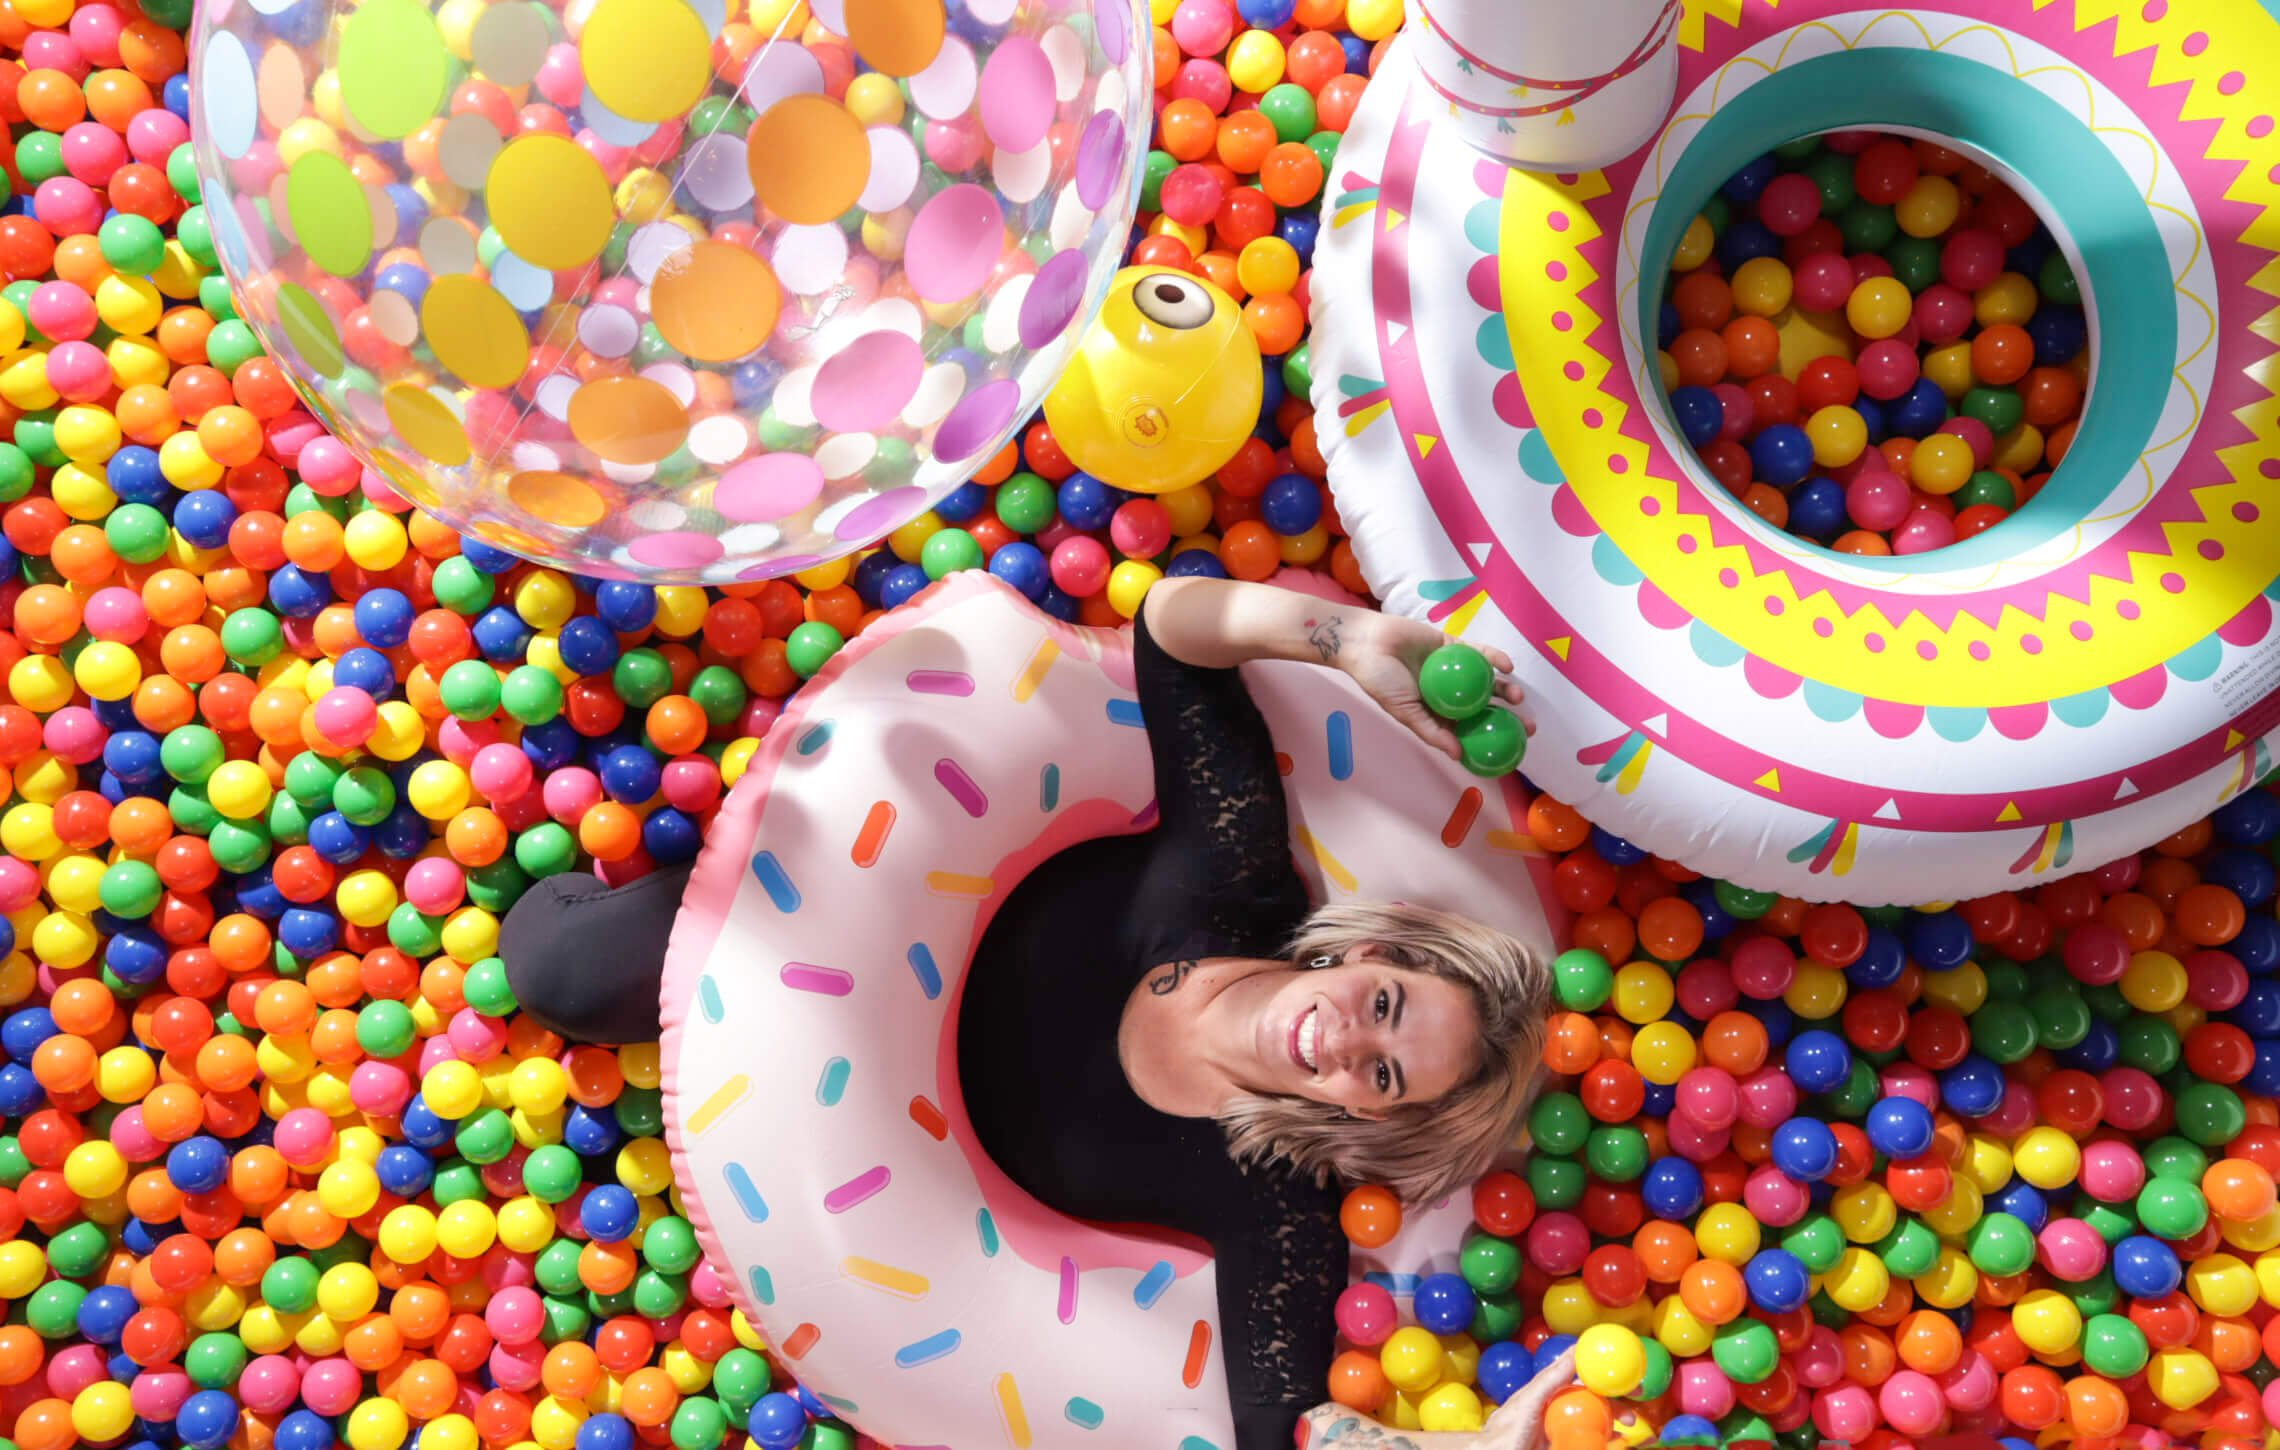 Woman in pink floatie inside a ball pit smiles to camera above